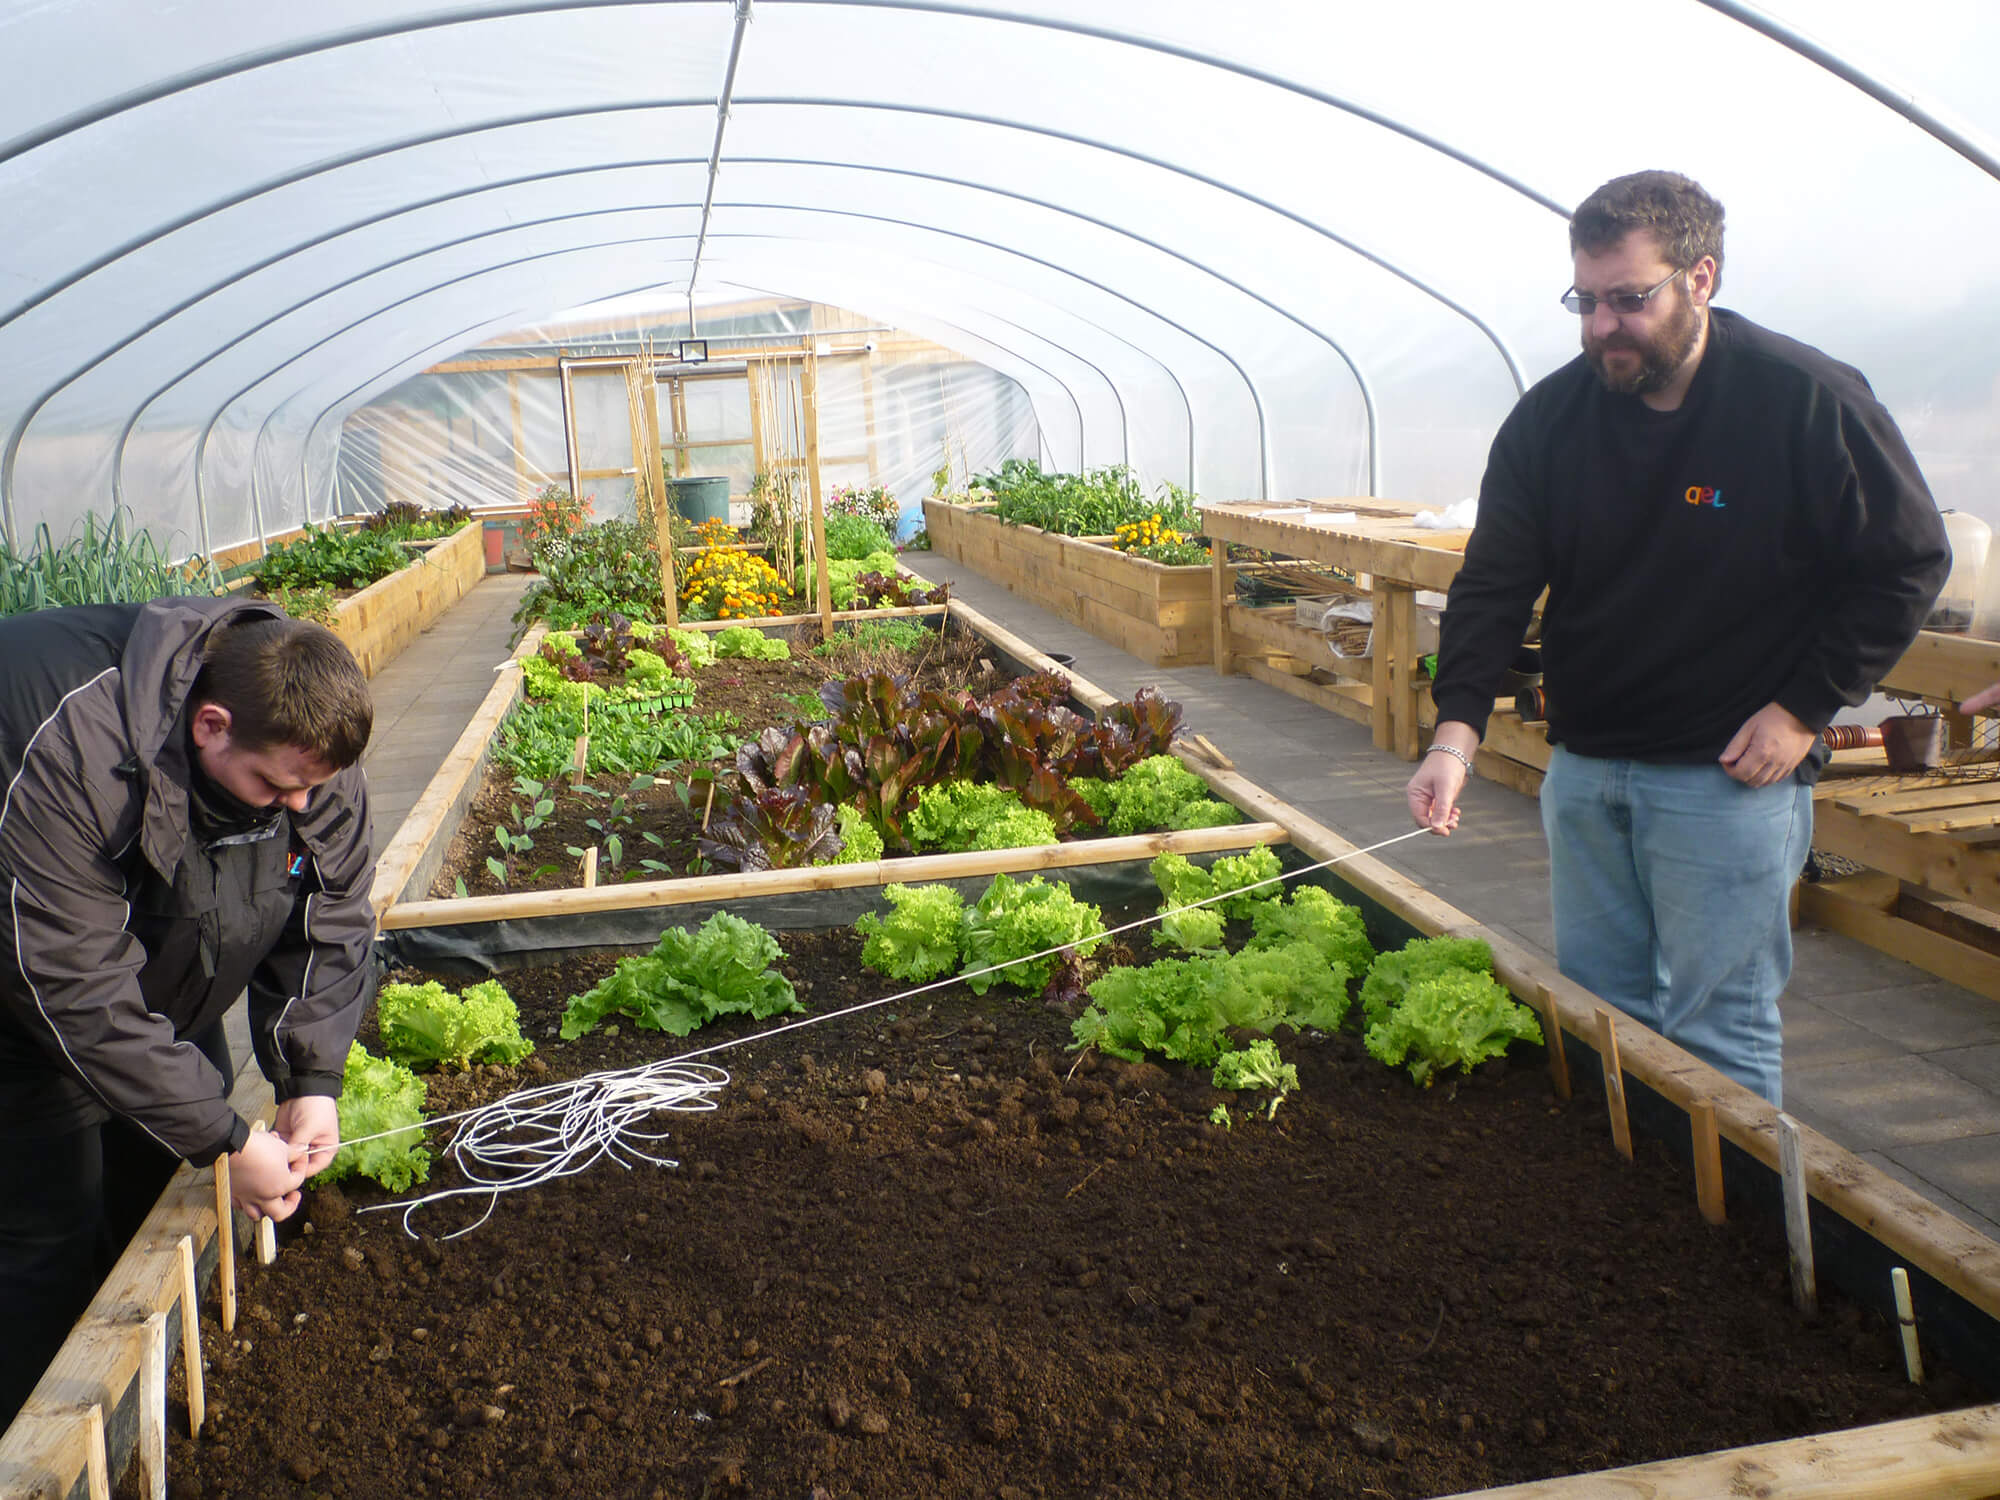 Tying up plants in the Greenhouse at AEL